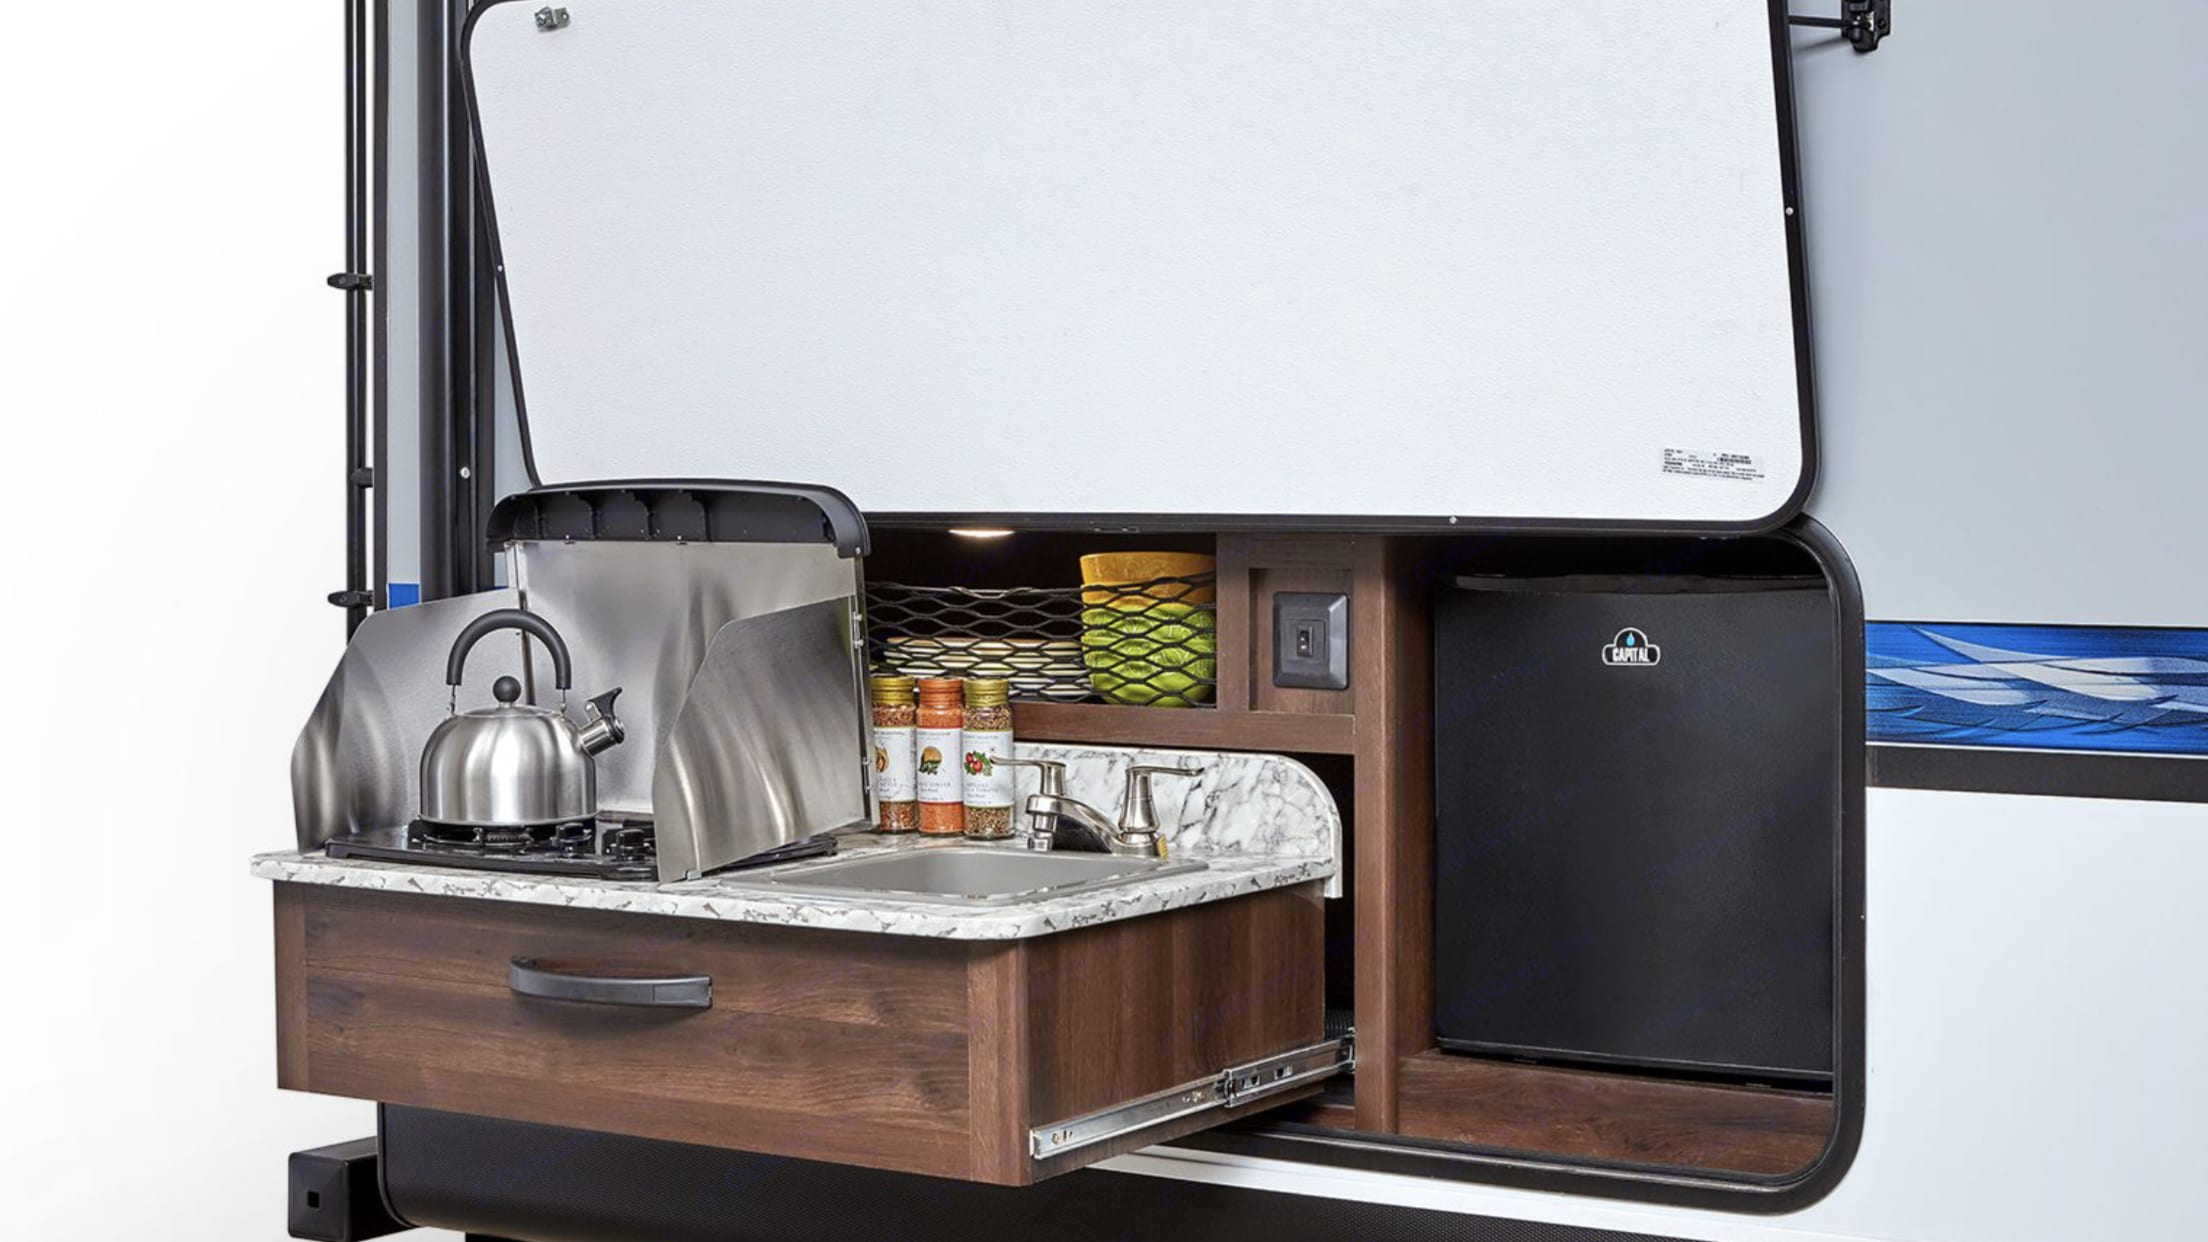 Convenient outside kitchen for all your cooking needs! Keep the messy cooking and smells outside and enjoy outdoor cooking!. Jayco Jay Feather 2019